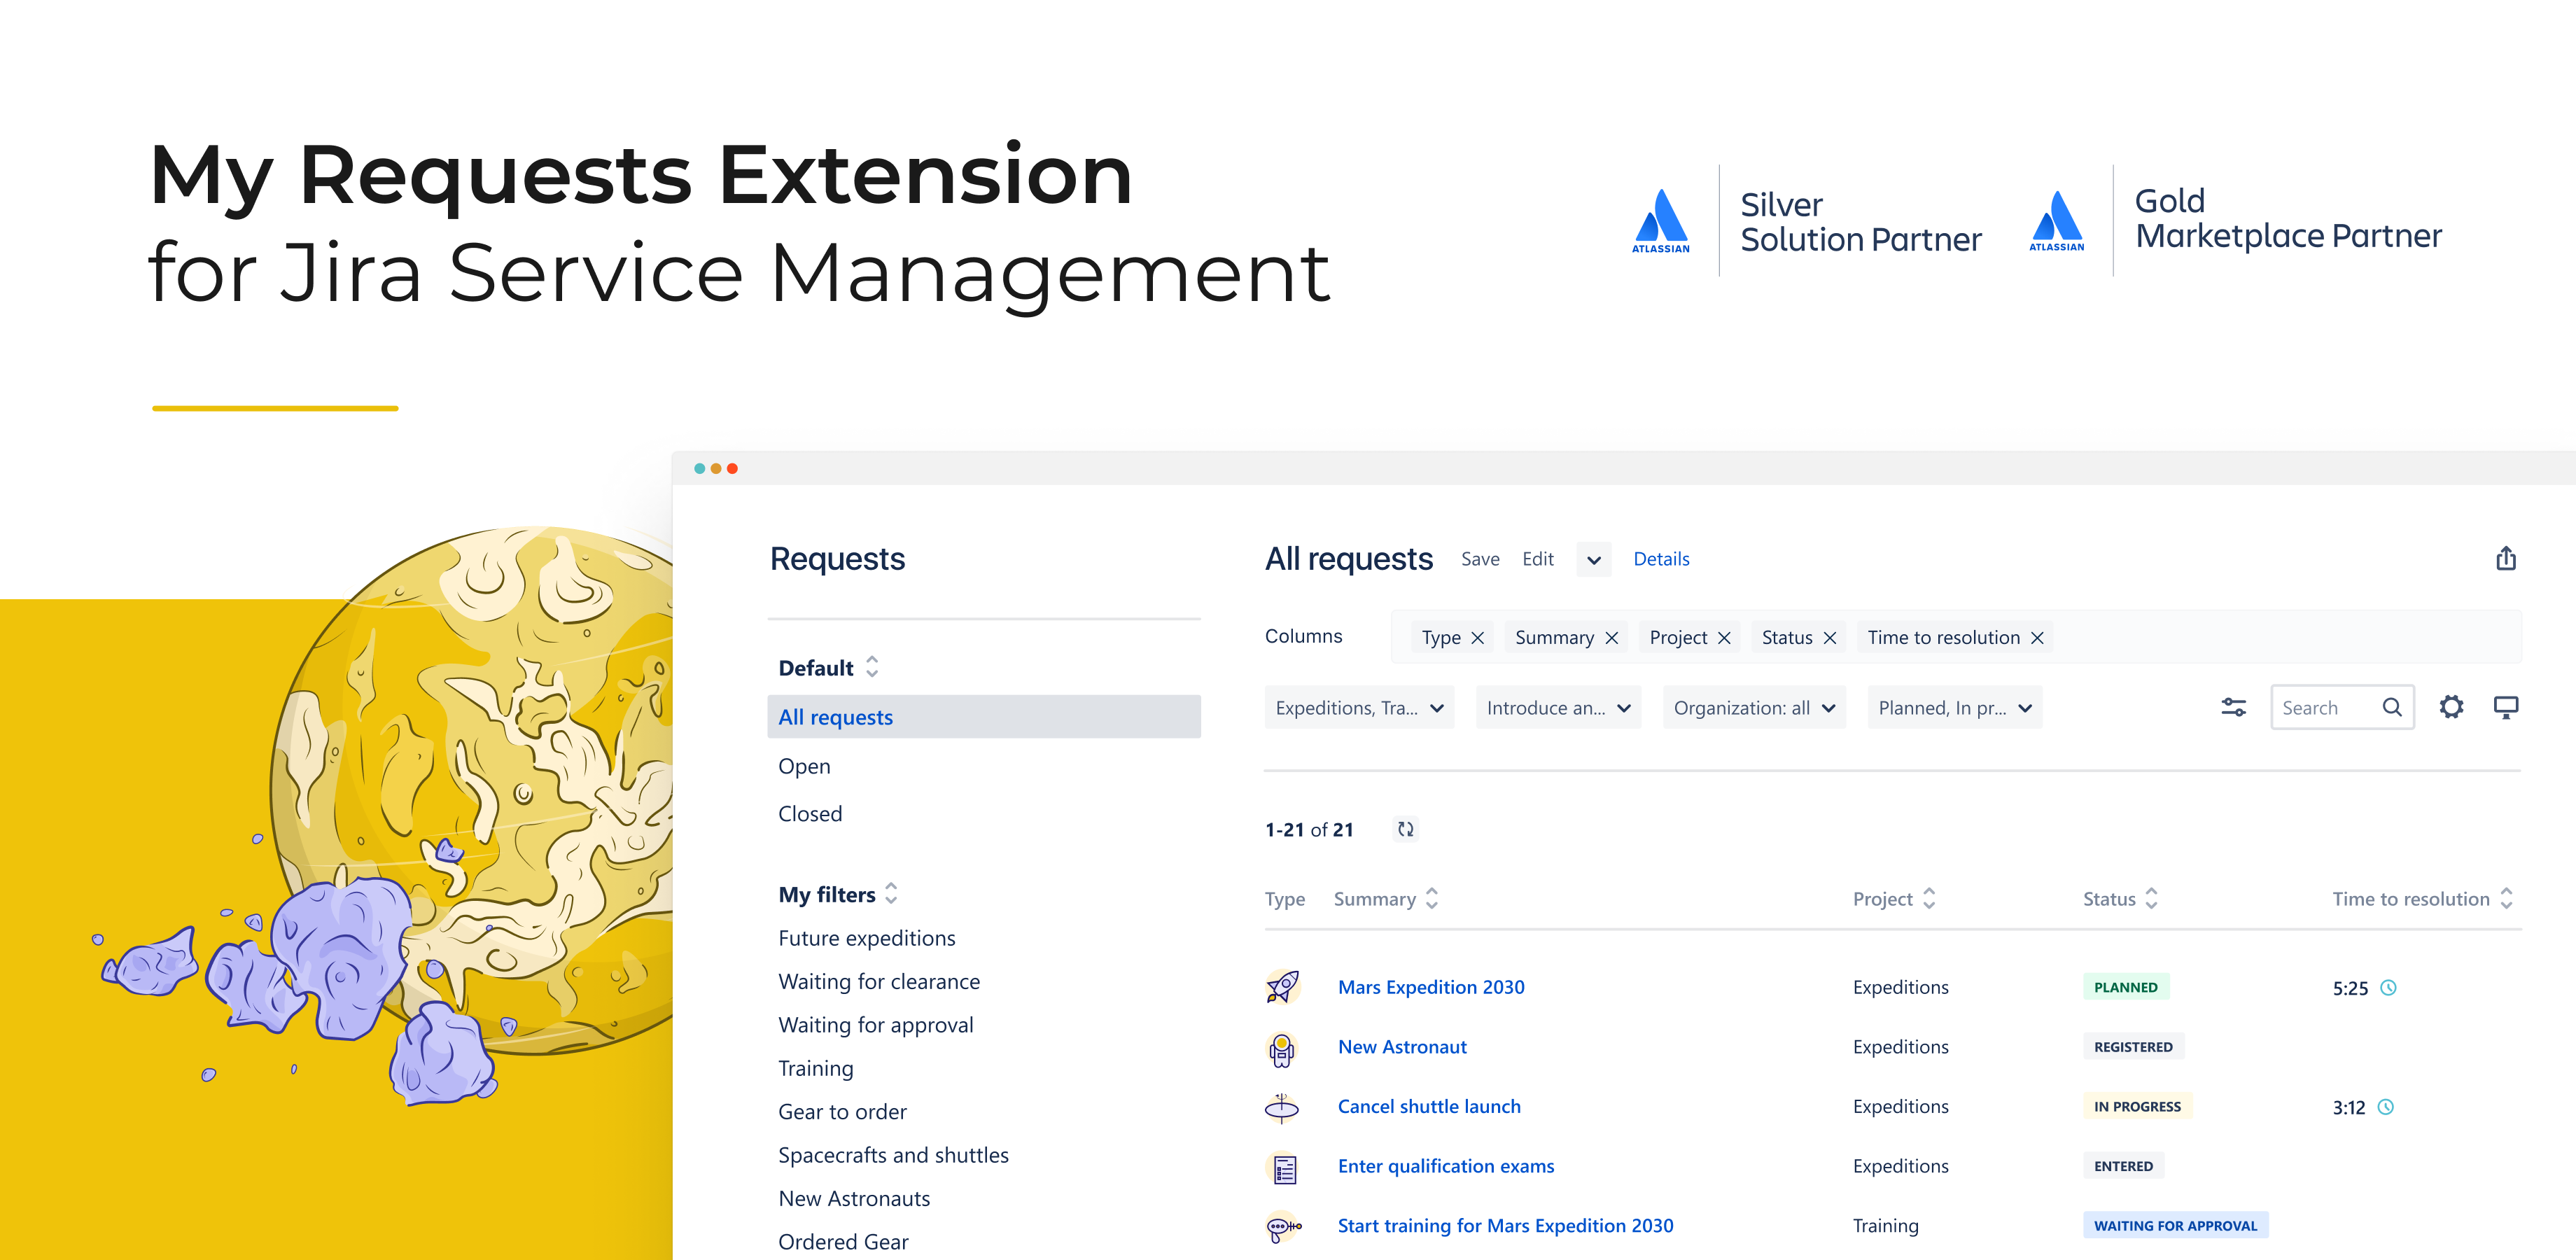 My Requests Extension for Jira Service Management